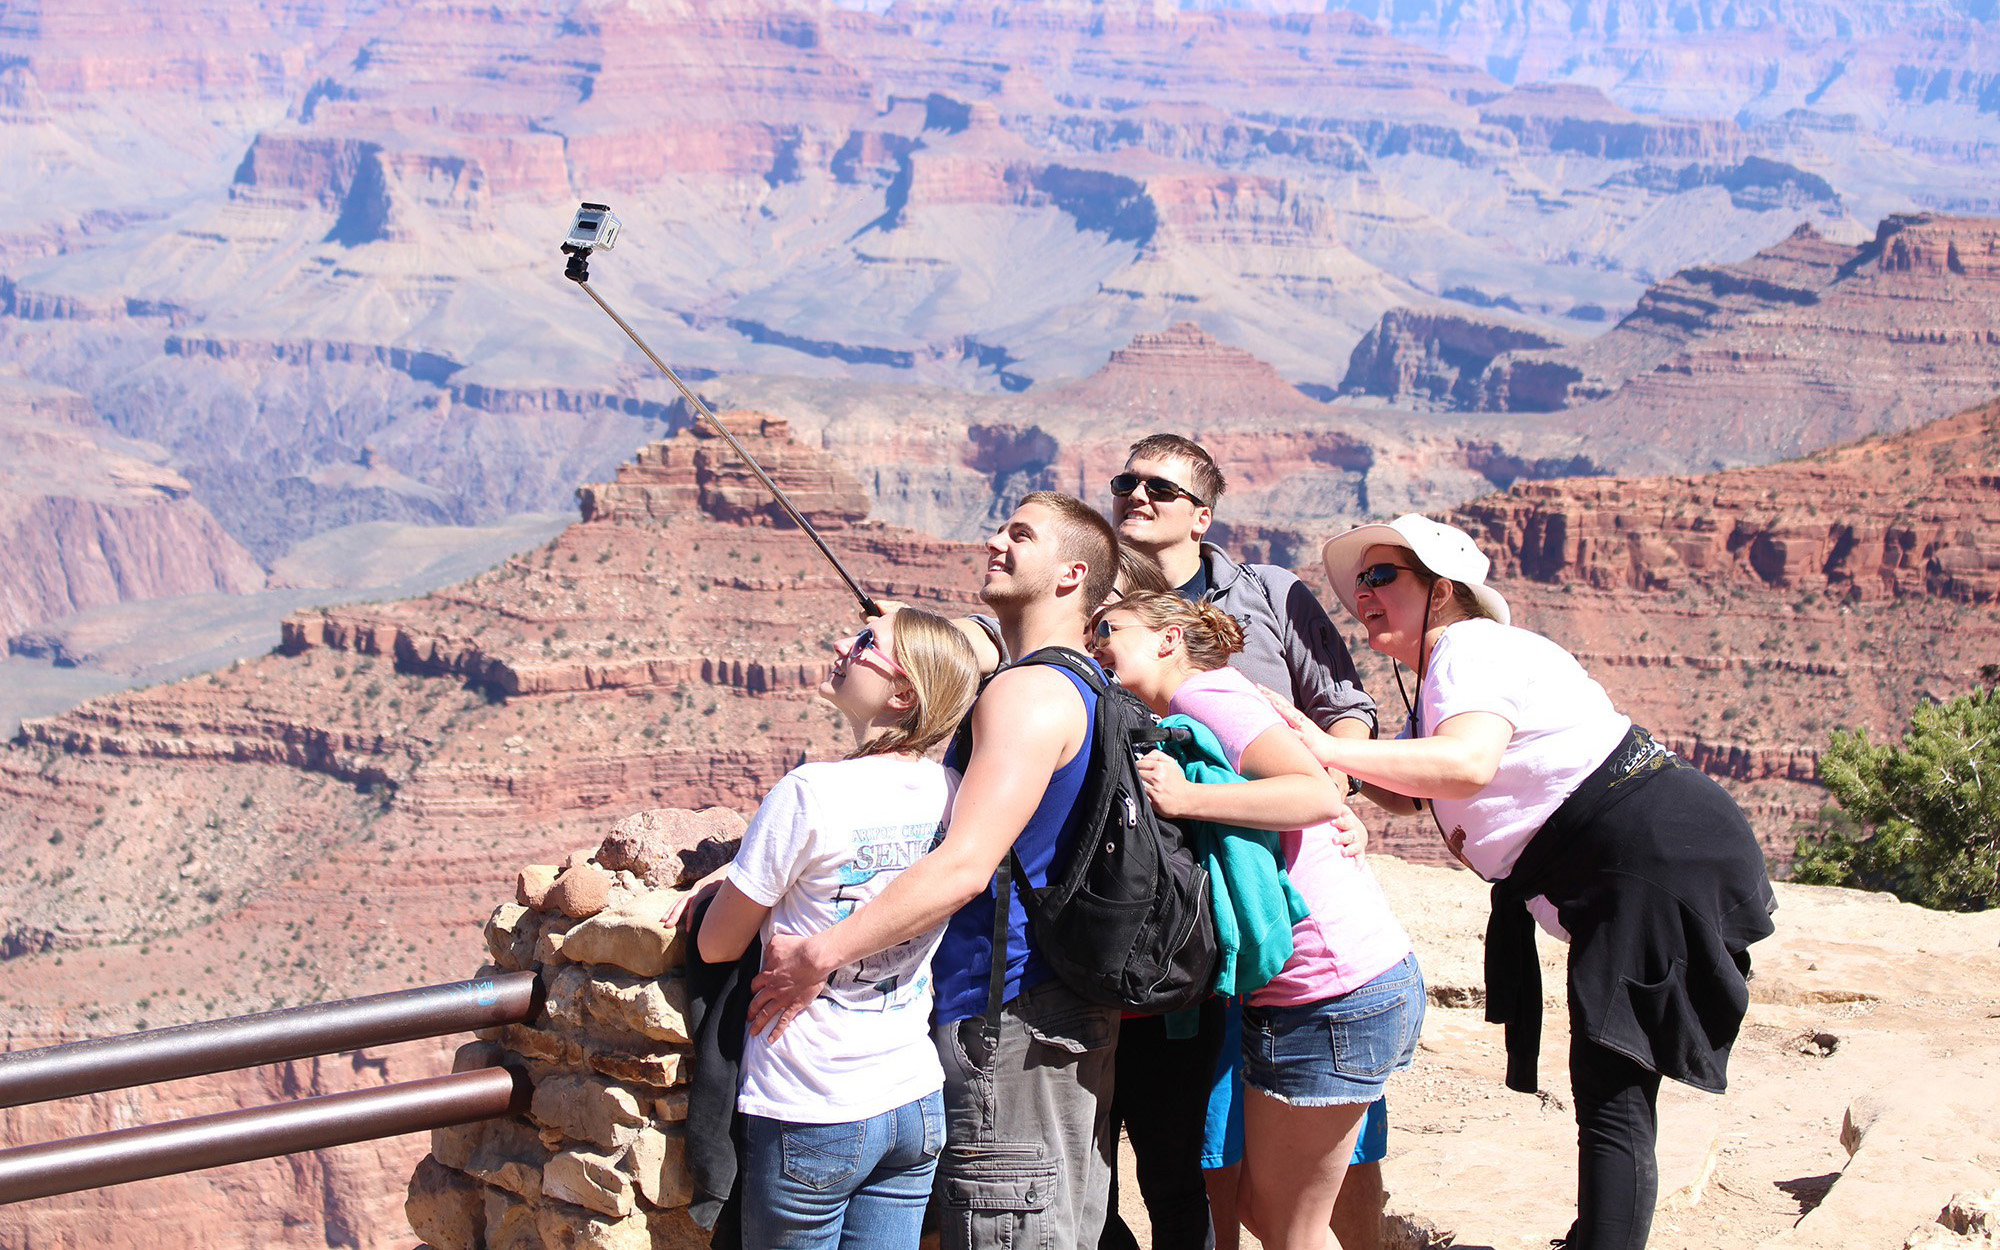 Tourists pose for a selfie in Grand Canyon National Park. (Photo by Sophia Kunthara/Cronkite News)